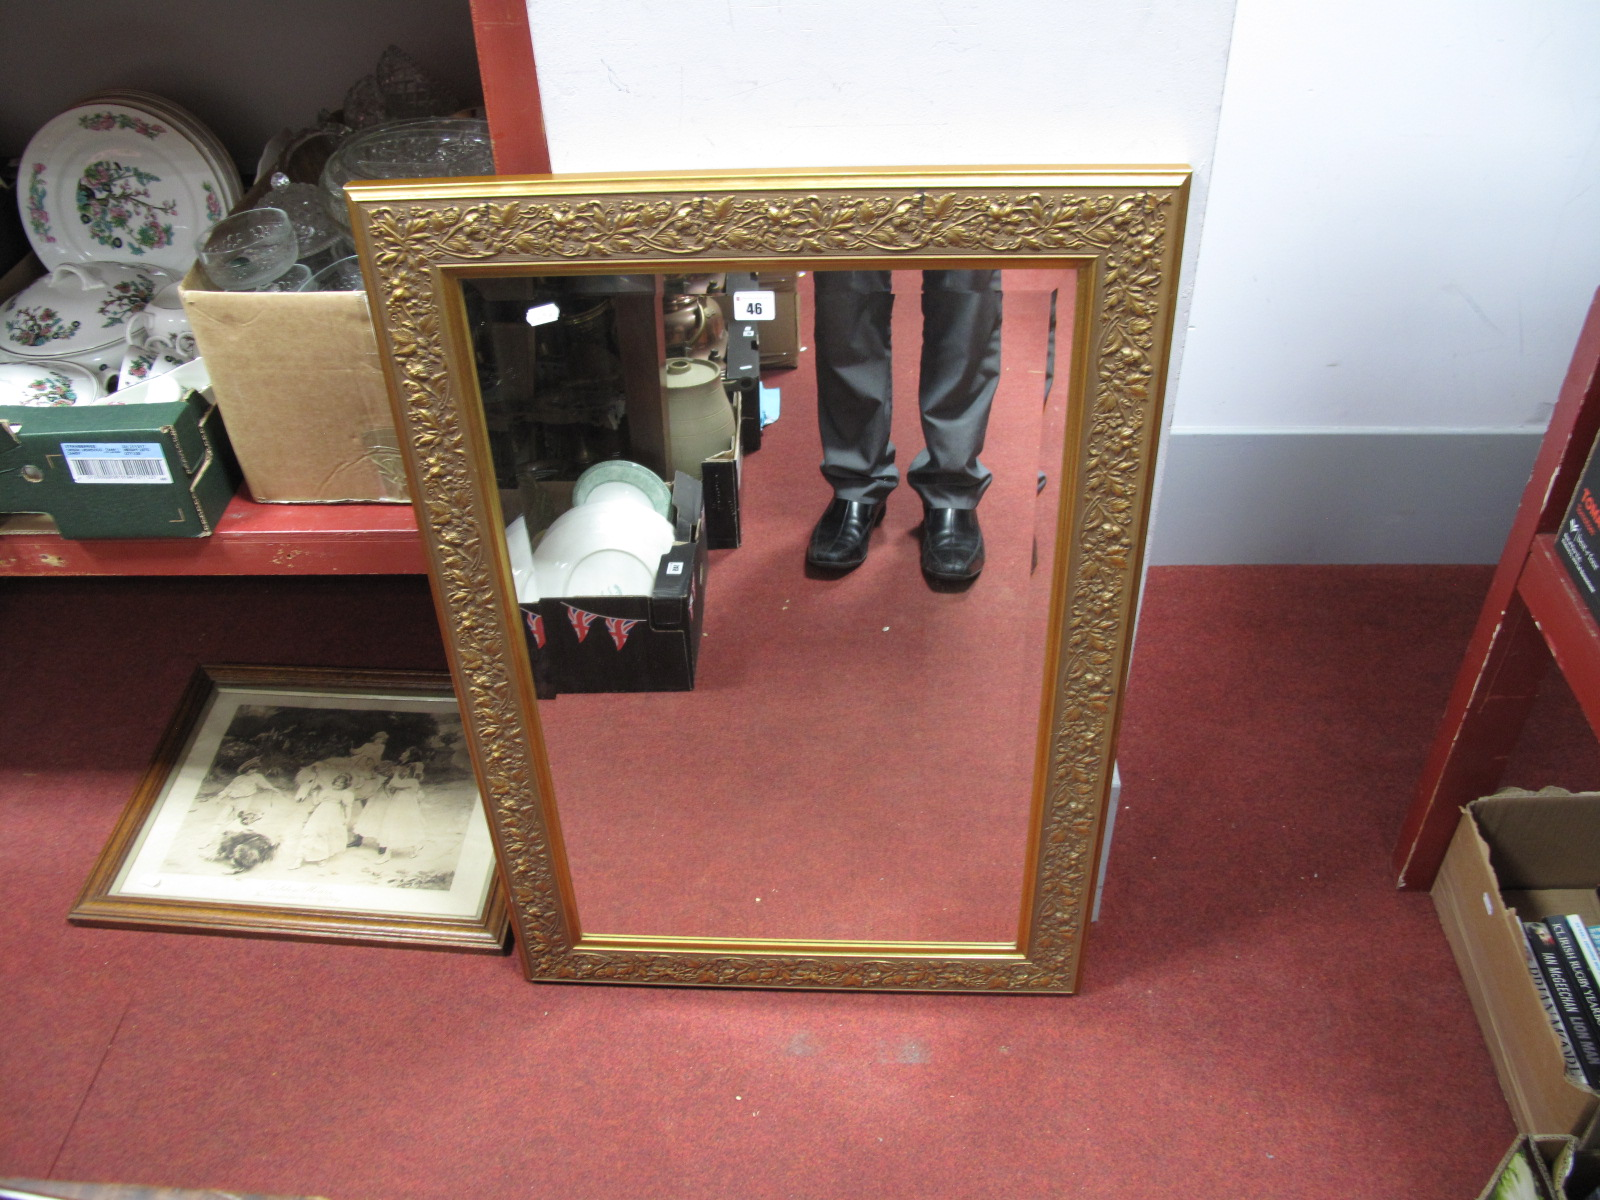 Lot 46 - A Rectangular Gold Coloured Framed Wall Mirror by Tivoli, approximately 94 x 65cm. A sepia print '